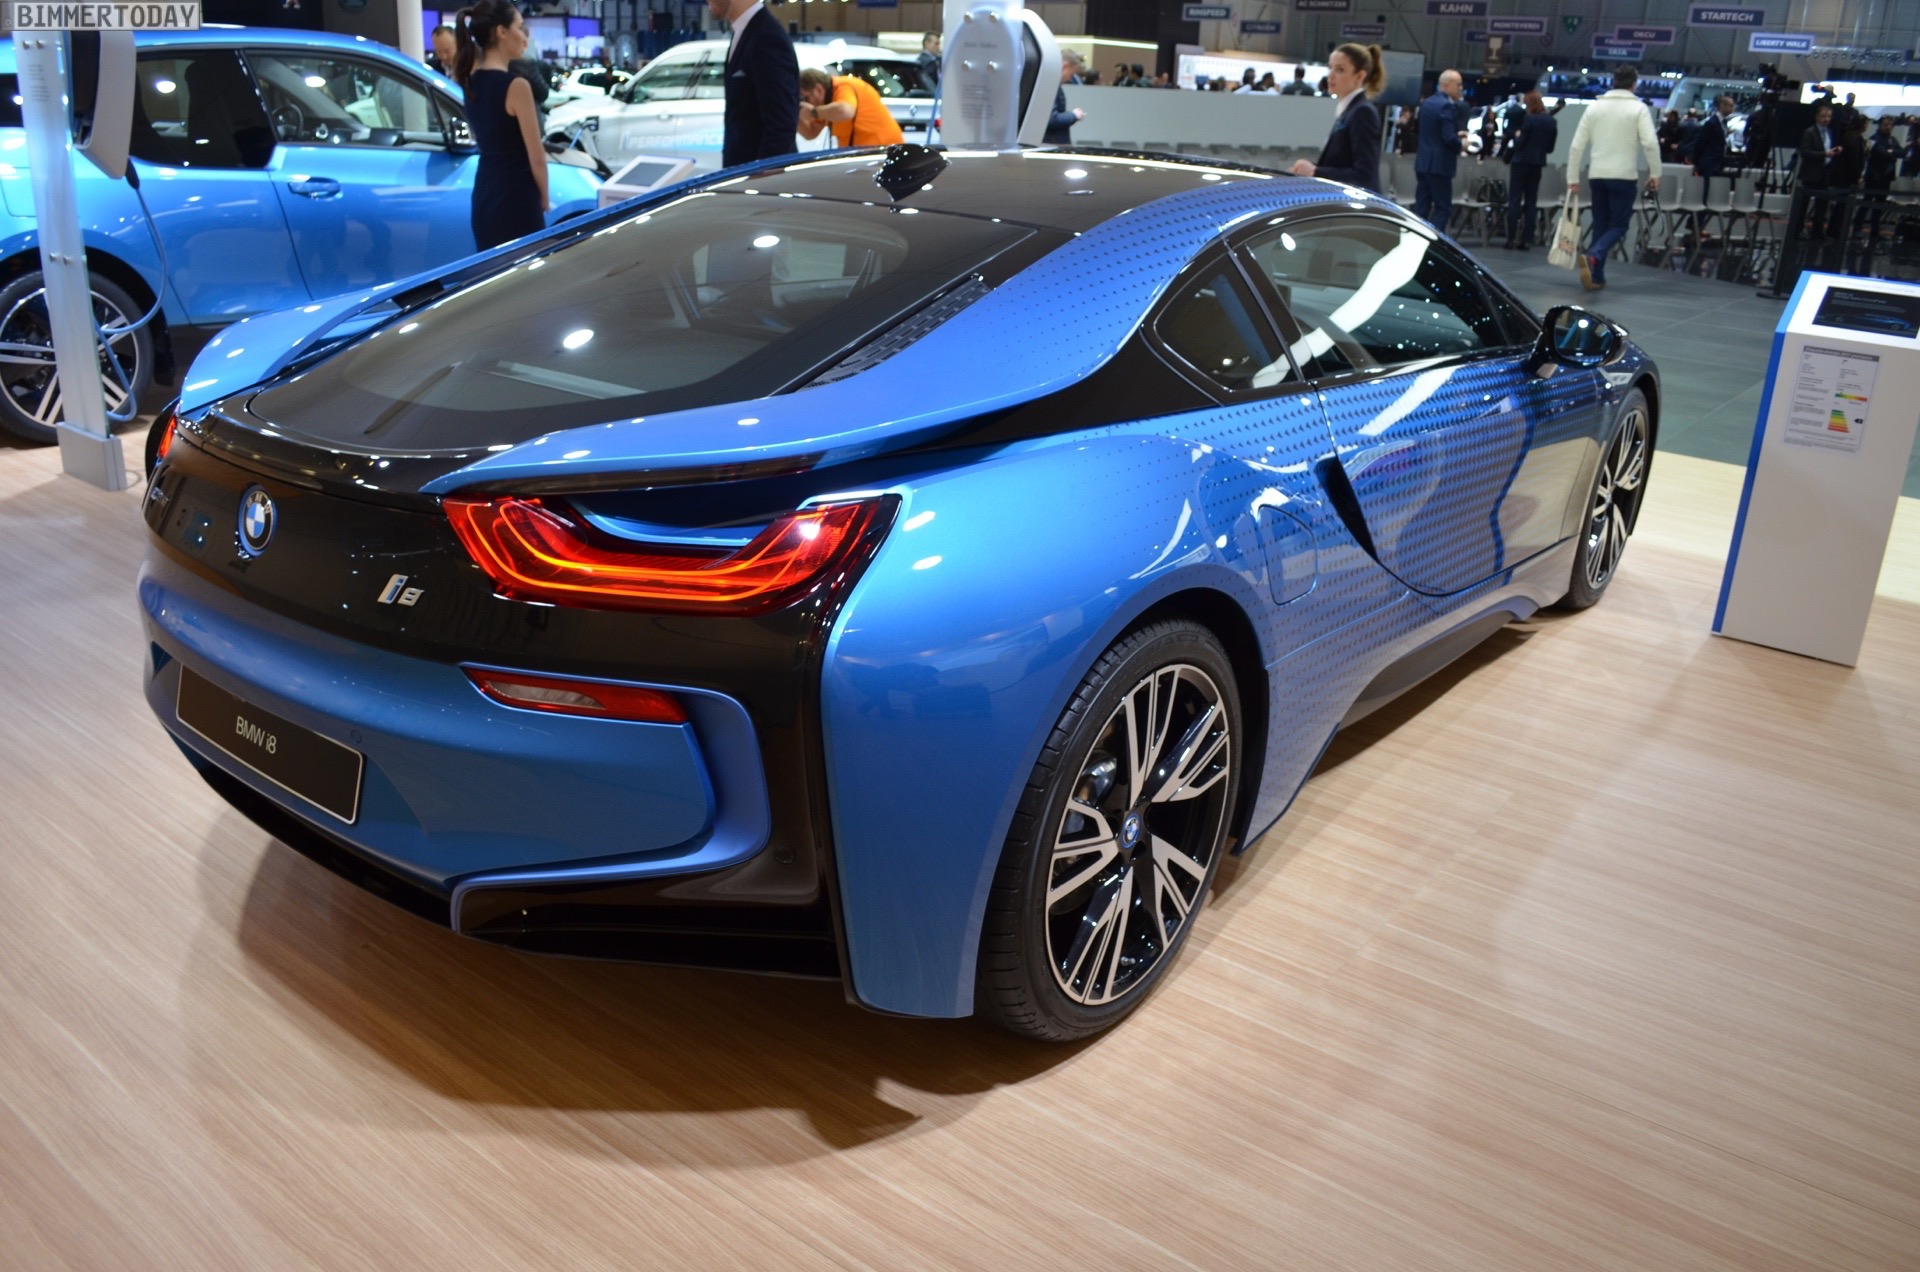 On The Body Surface Of BMW I8 Garage Italia CrossFade Accurately Defined Color Changes Between Protonic Blue Metallic And Dark Silver